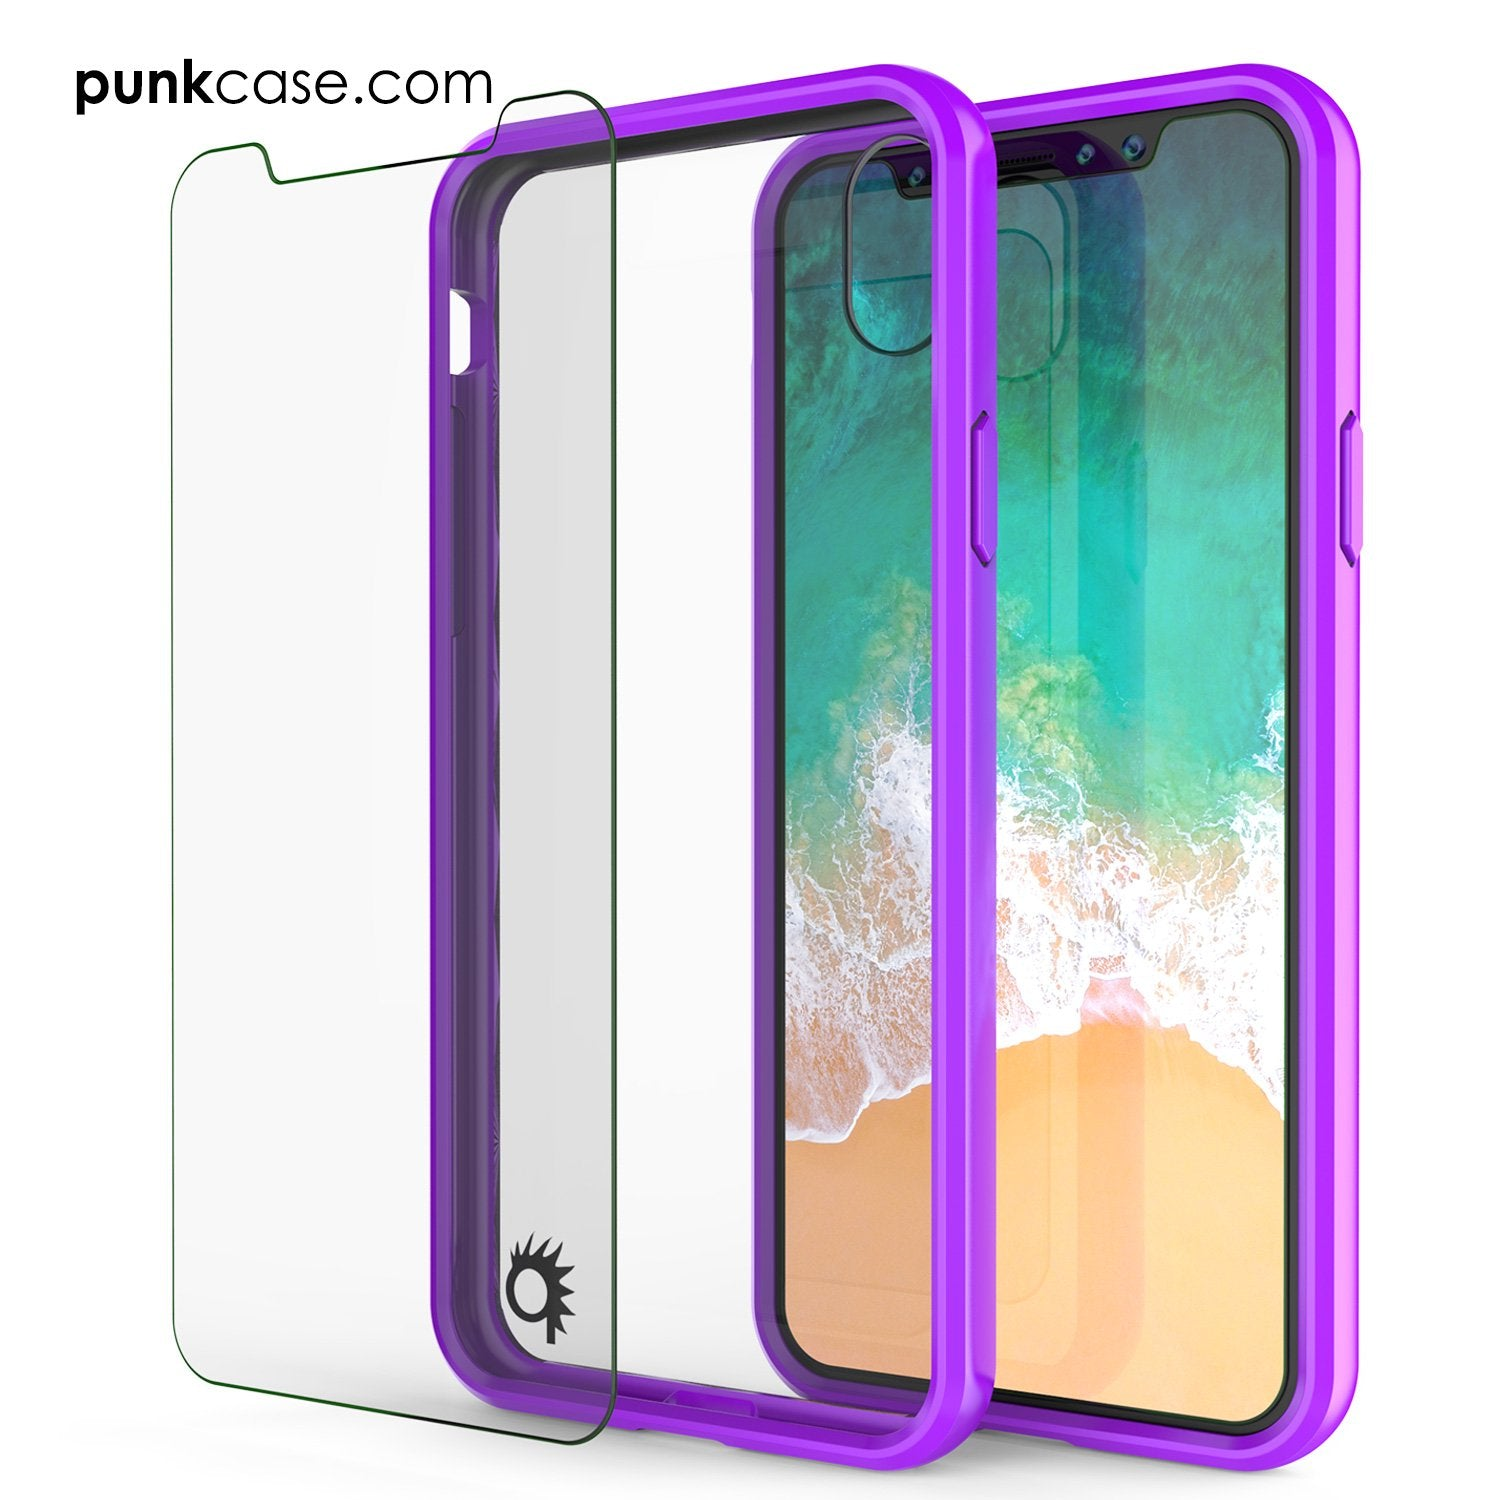 iPhone X Case, PUNKcase [LUCID 2.0 Series] [Slim Fit] Armor Cover W/Integrated Anti-Shock System [Purple] - PunkCase NZ